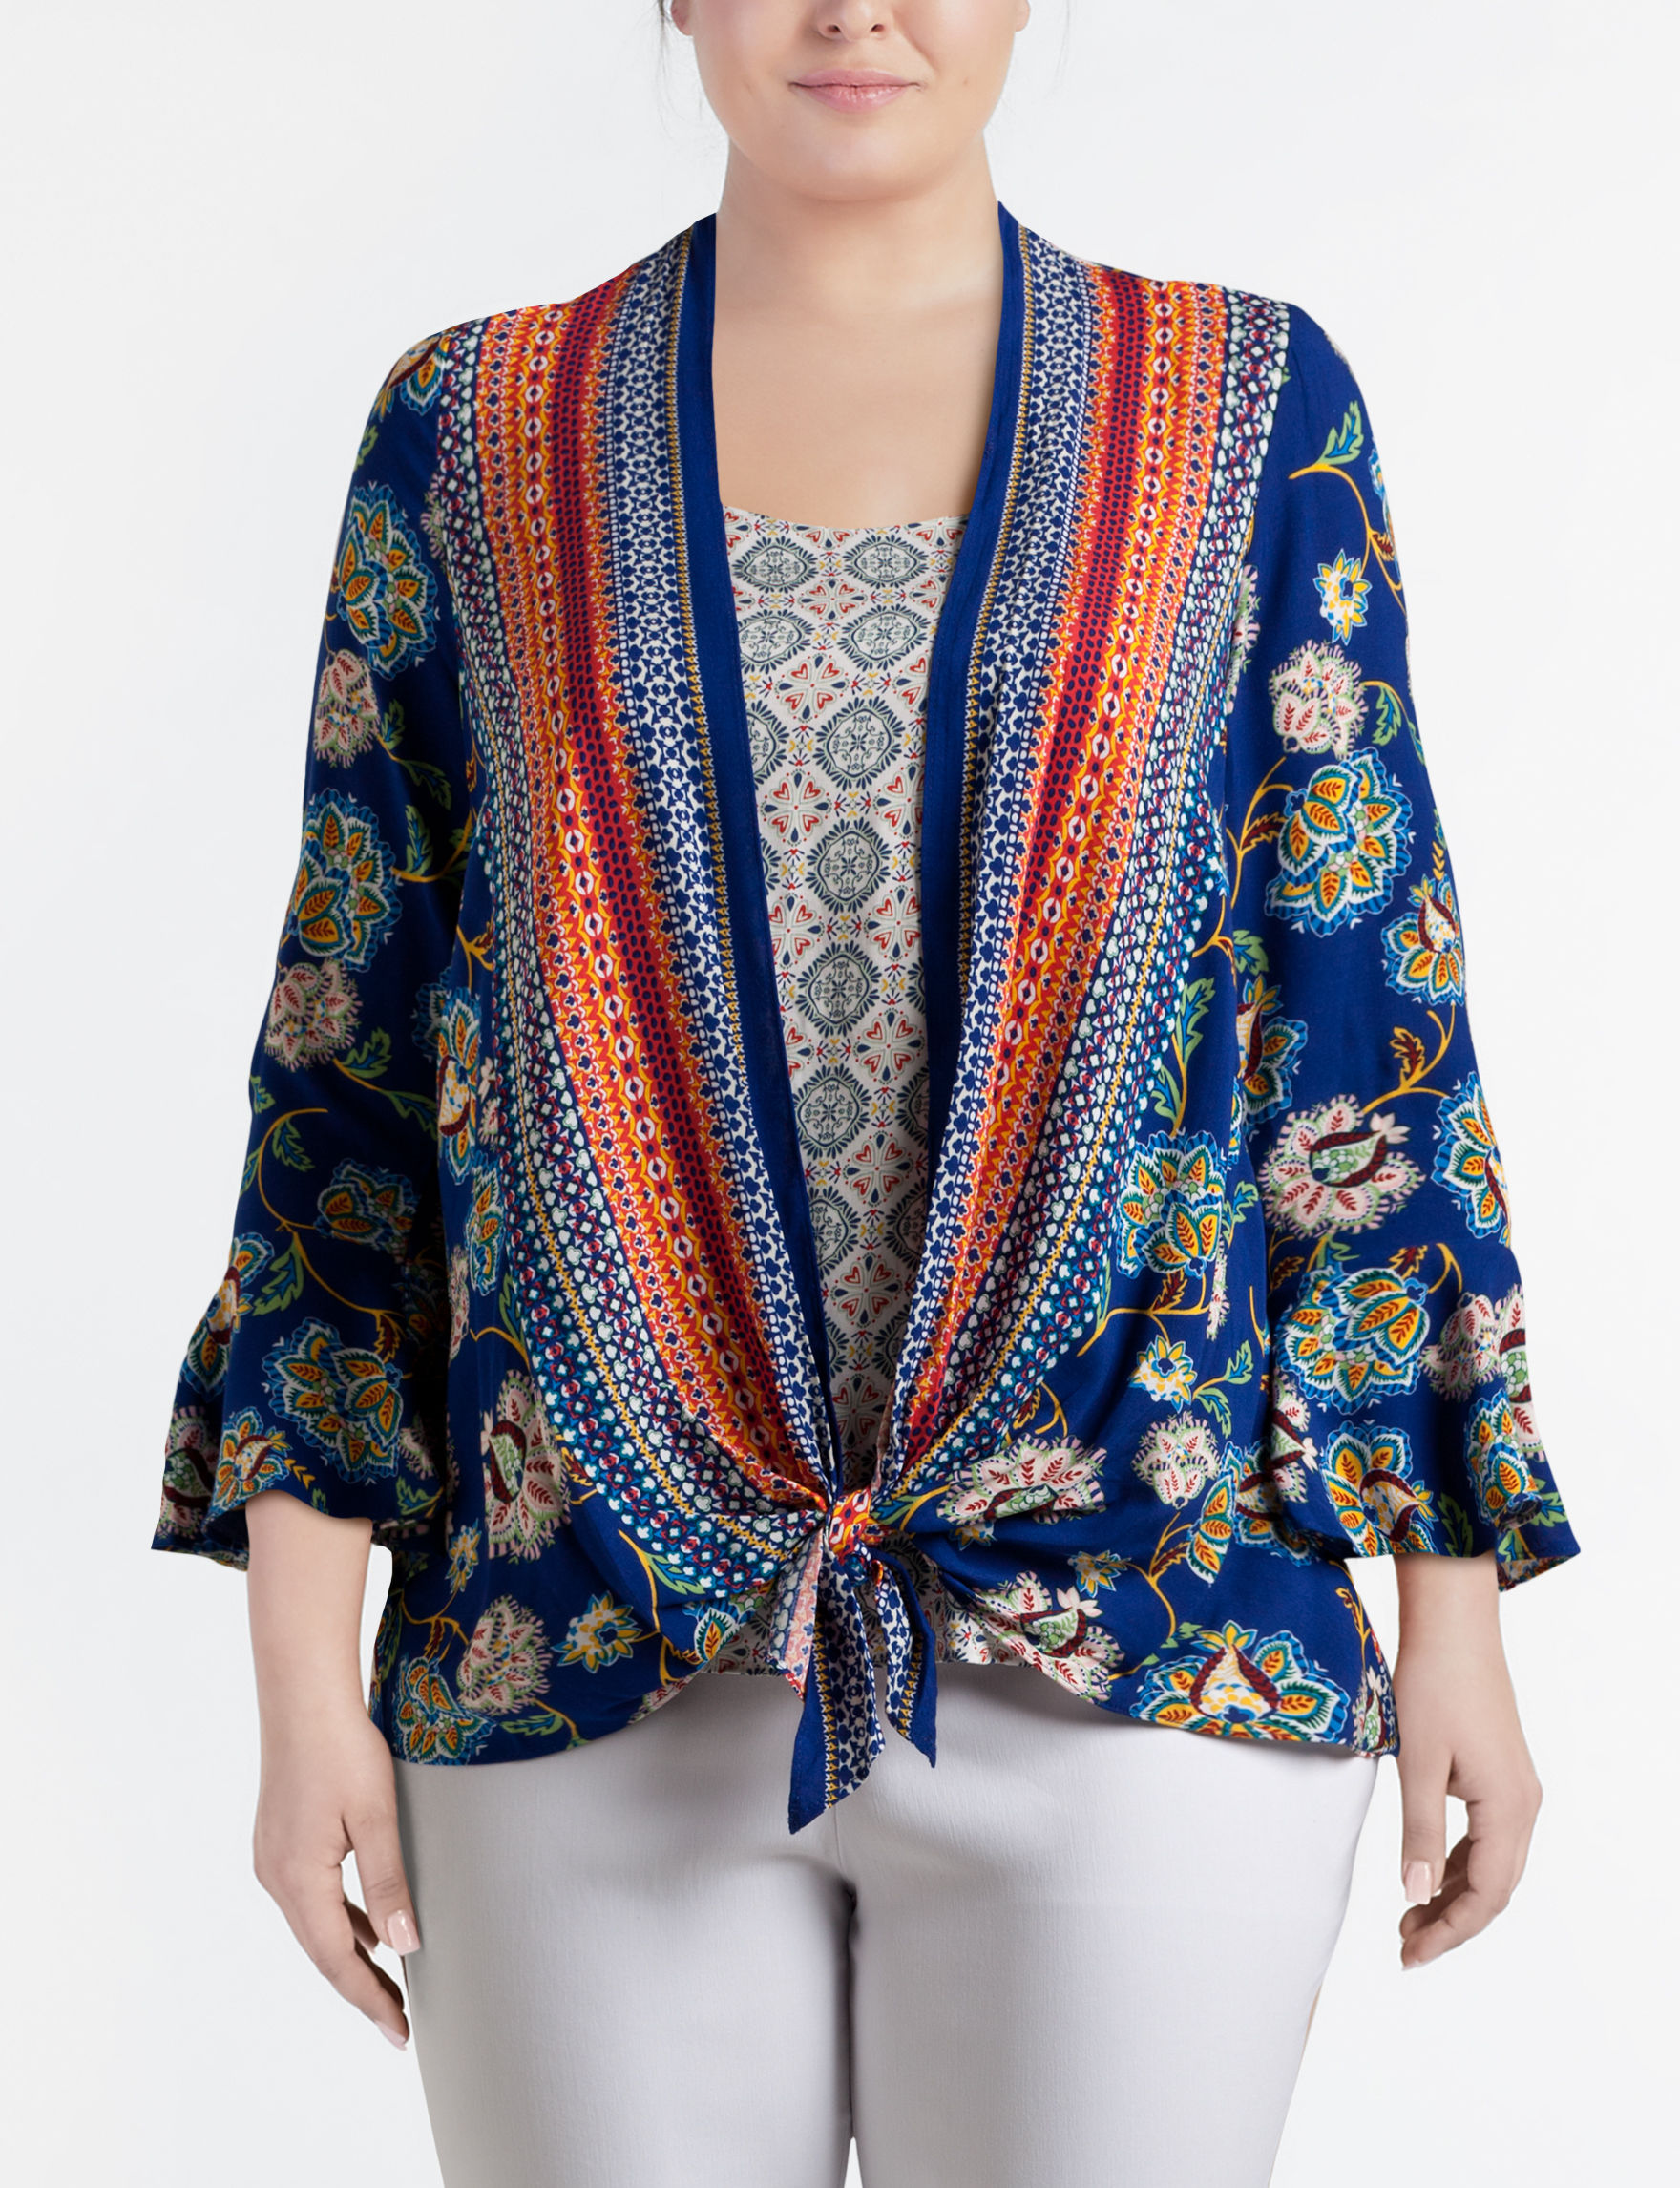 Figuero & Flower Blue Multi Shirts & Blouses